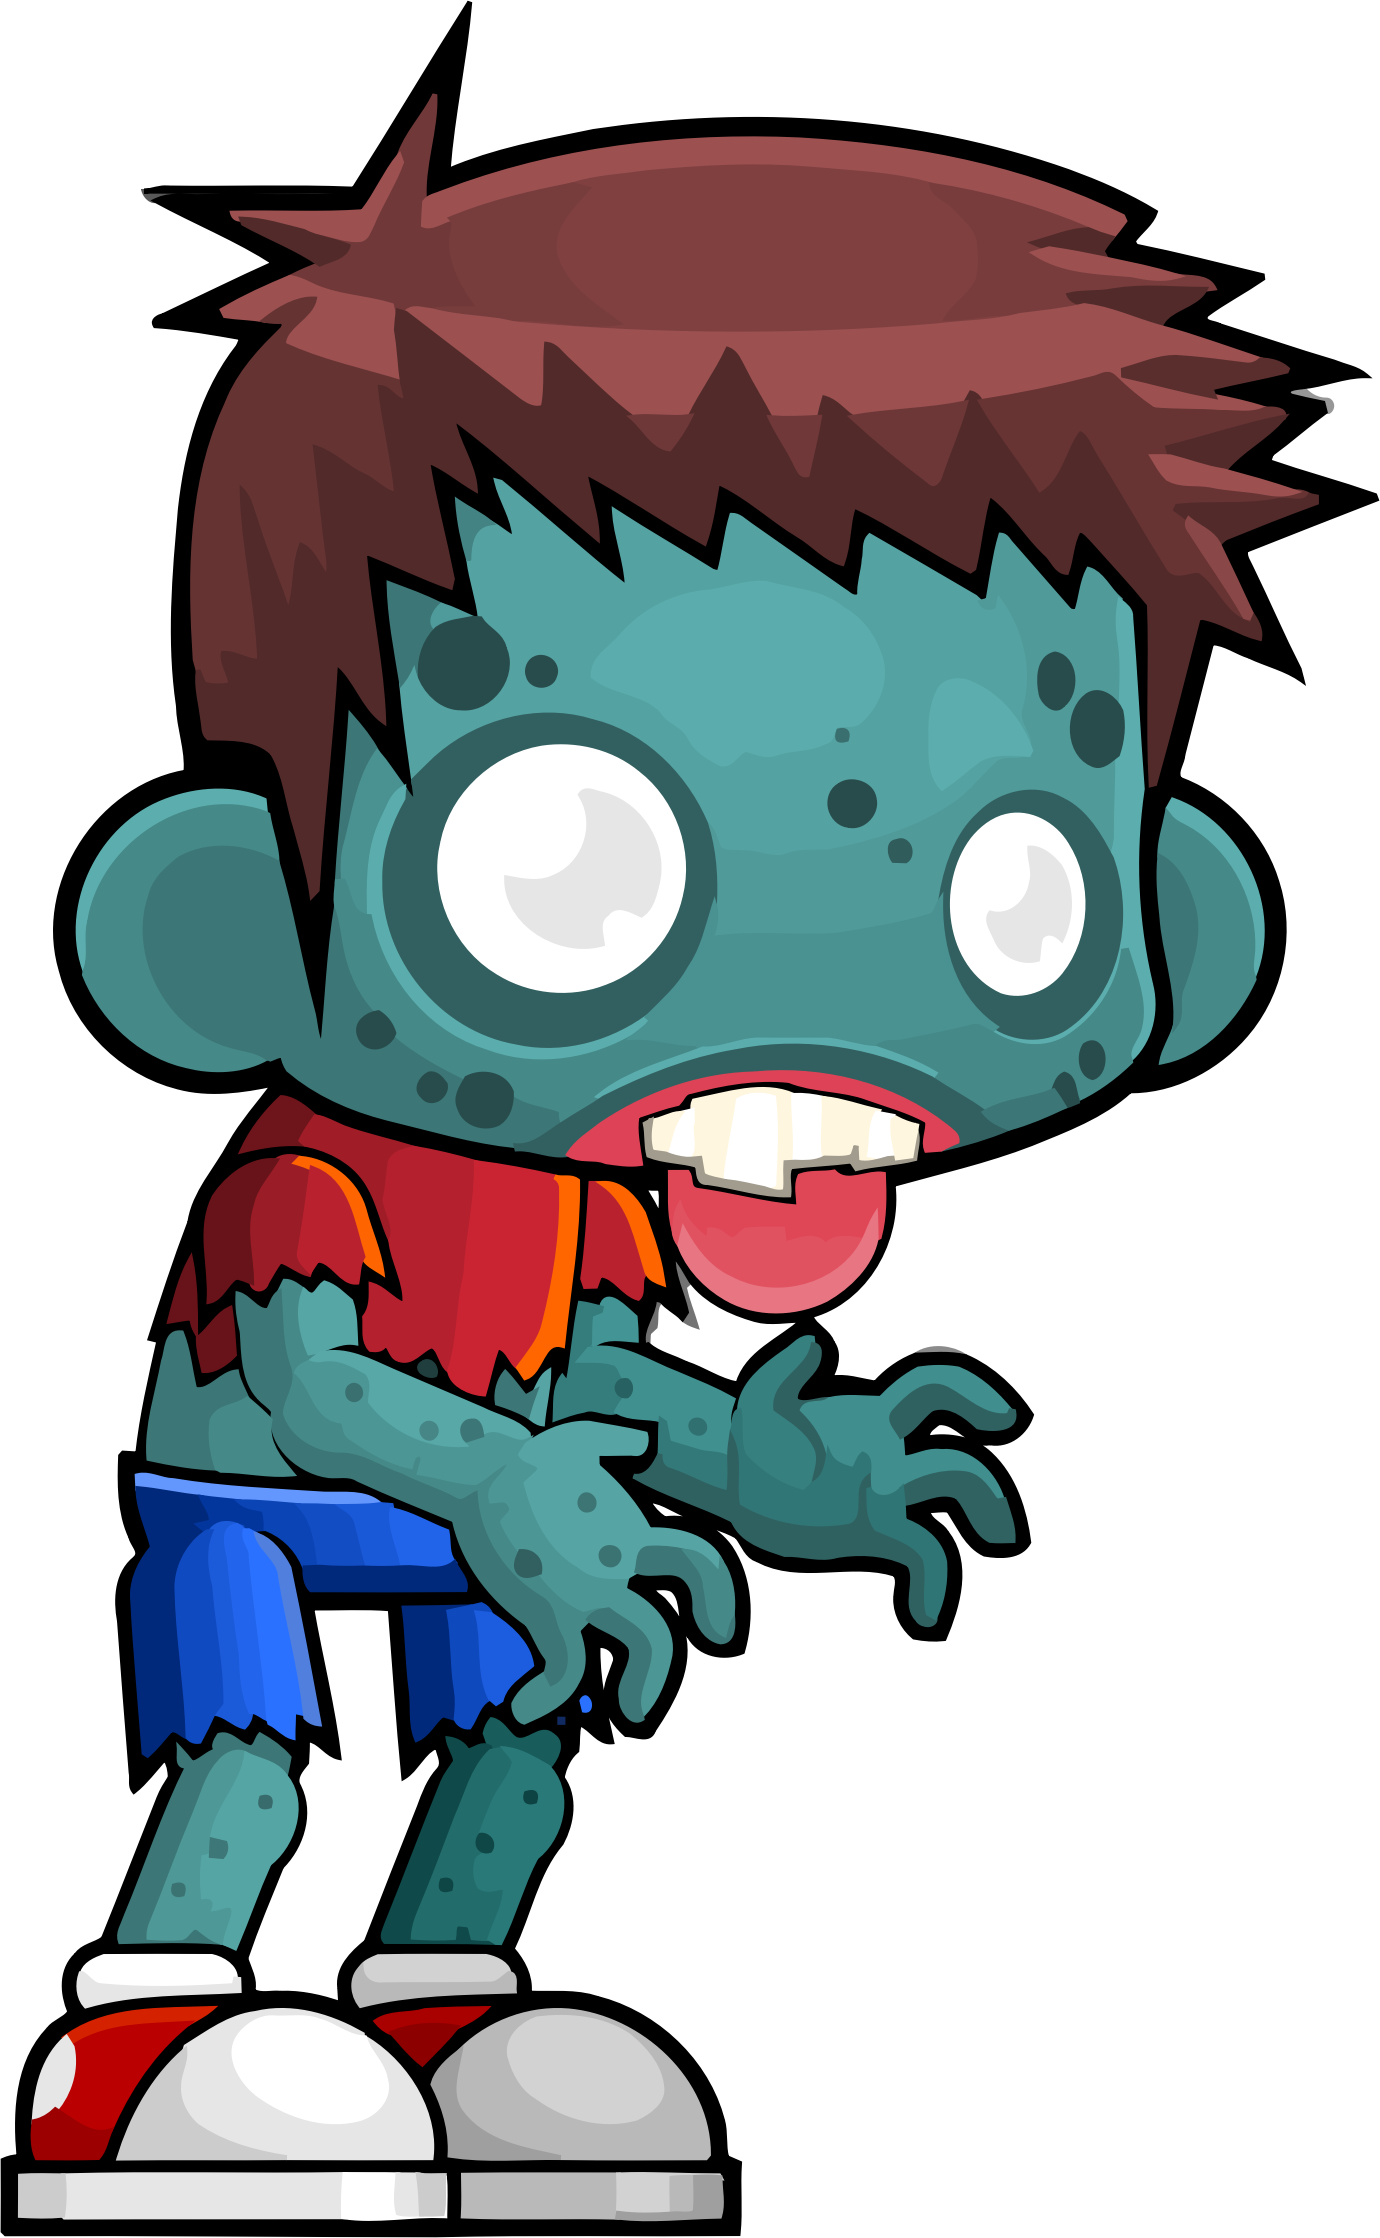 Zombie clipart zombie brain. Male icons png free